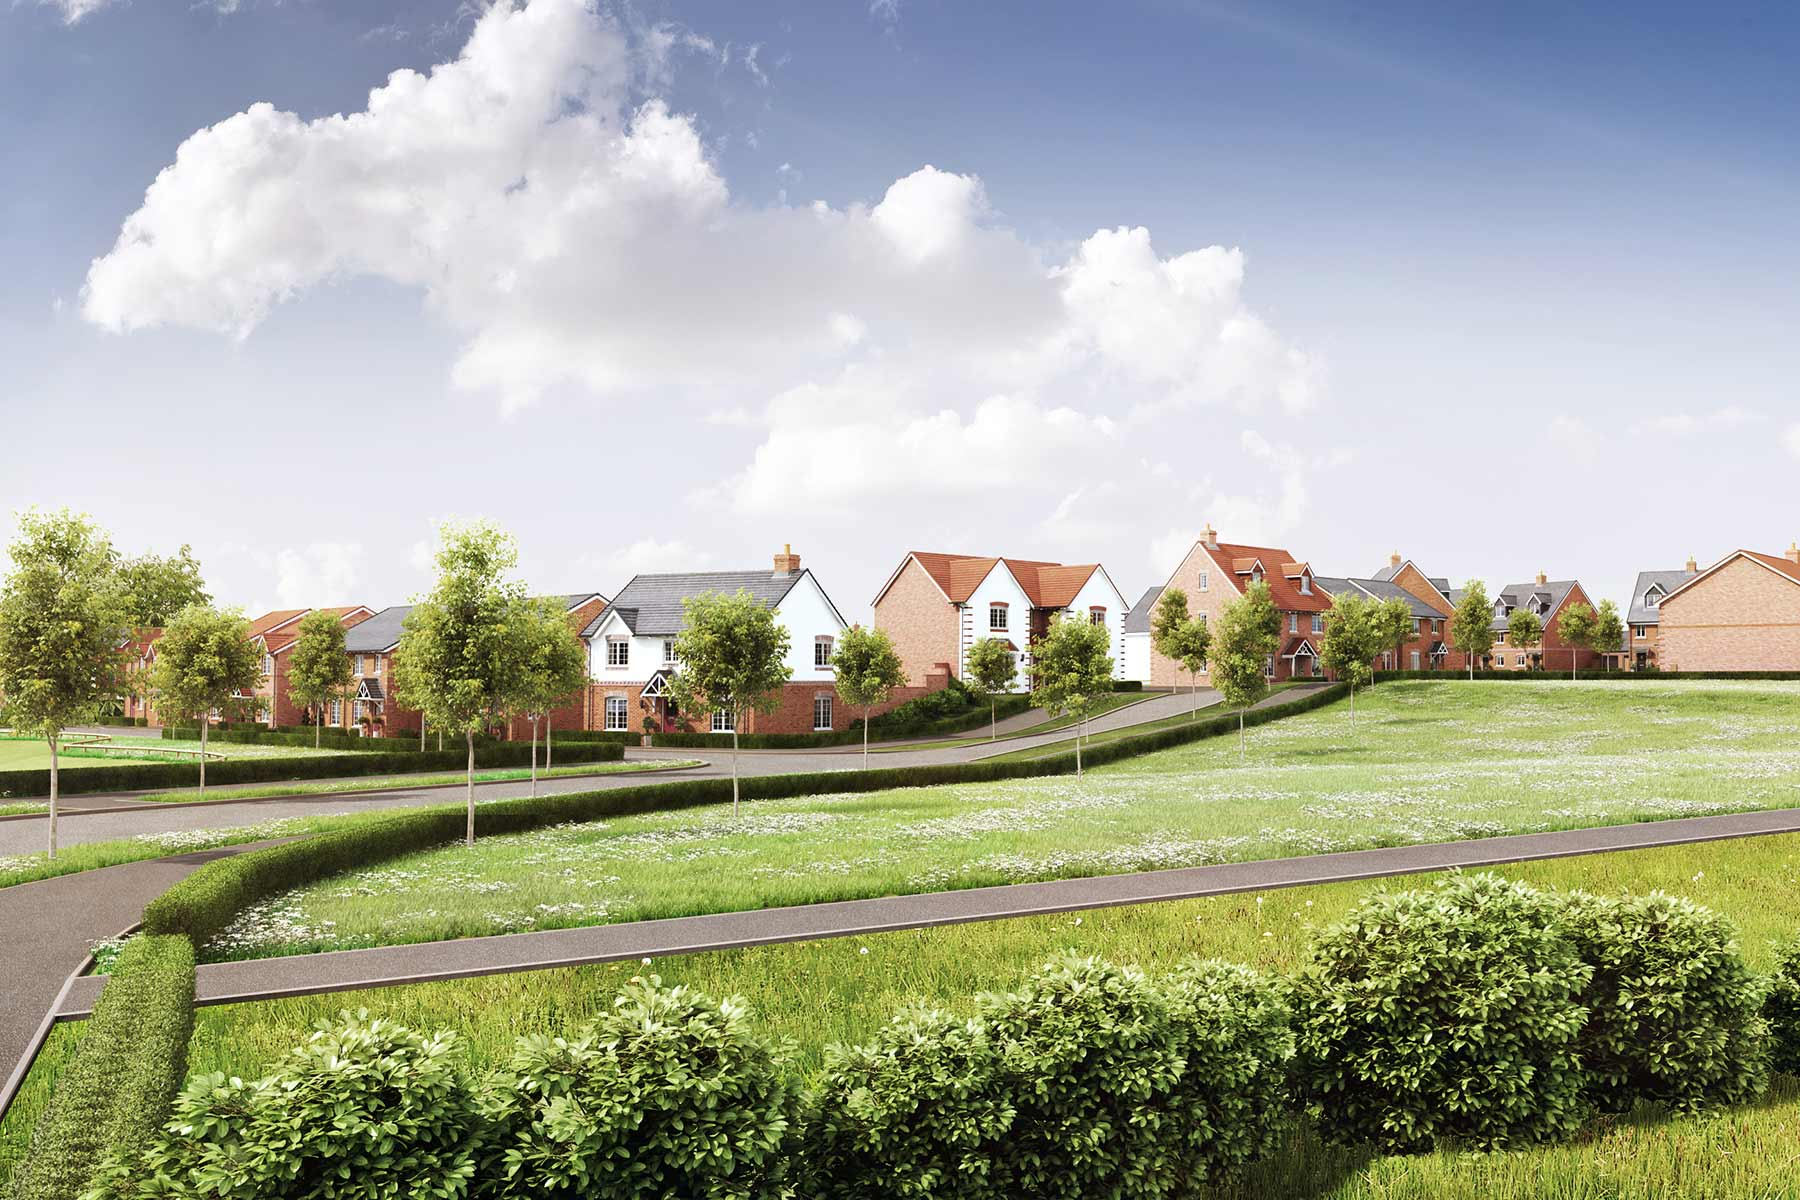 Flynig Fields - Streetscene - Main Street and Rural Edge - Plots 1 and 43